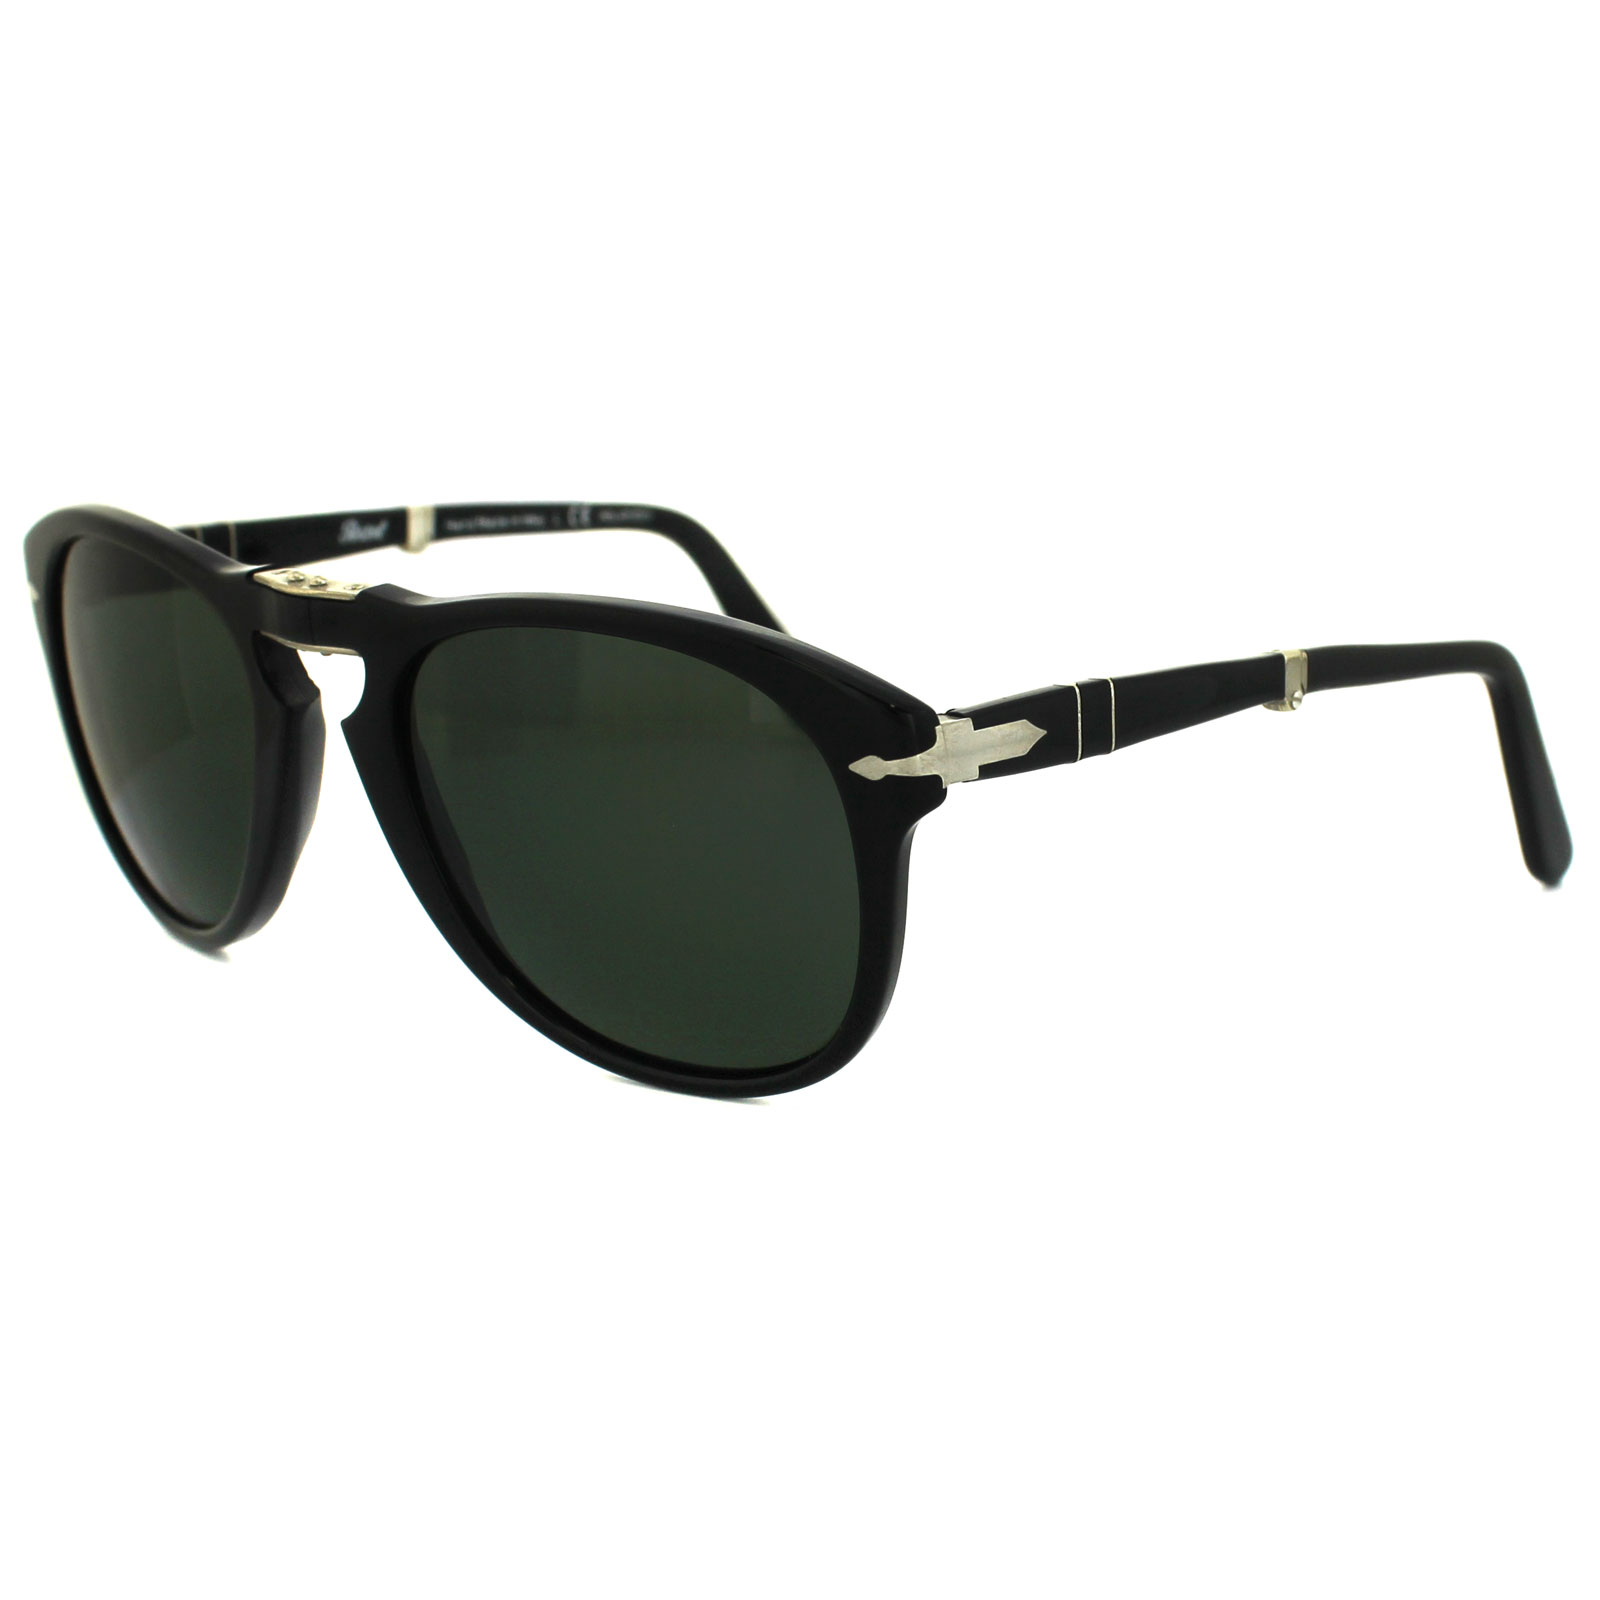 8e42a8bd1c2e8 Sentinel Persol Sunglasses 714 95 58 Black Green Polarized Folding Steve  McQueen 54mm